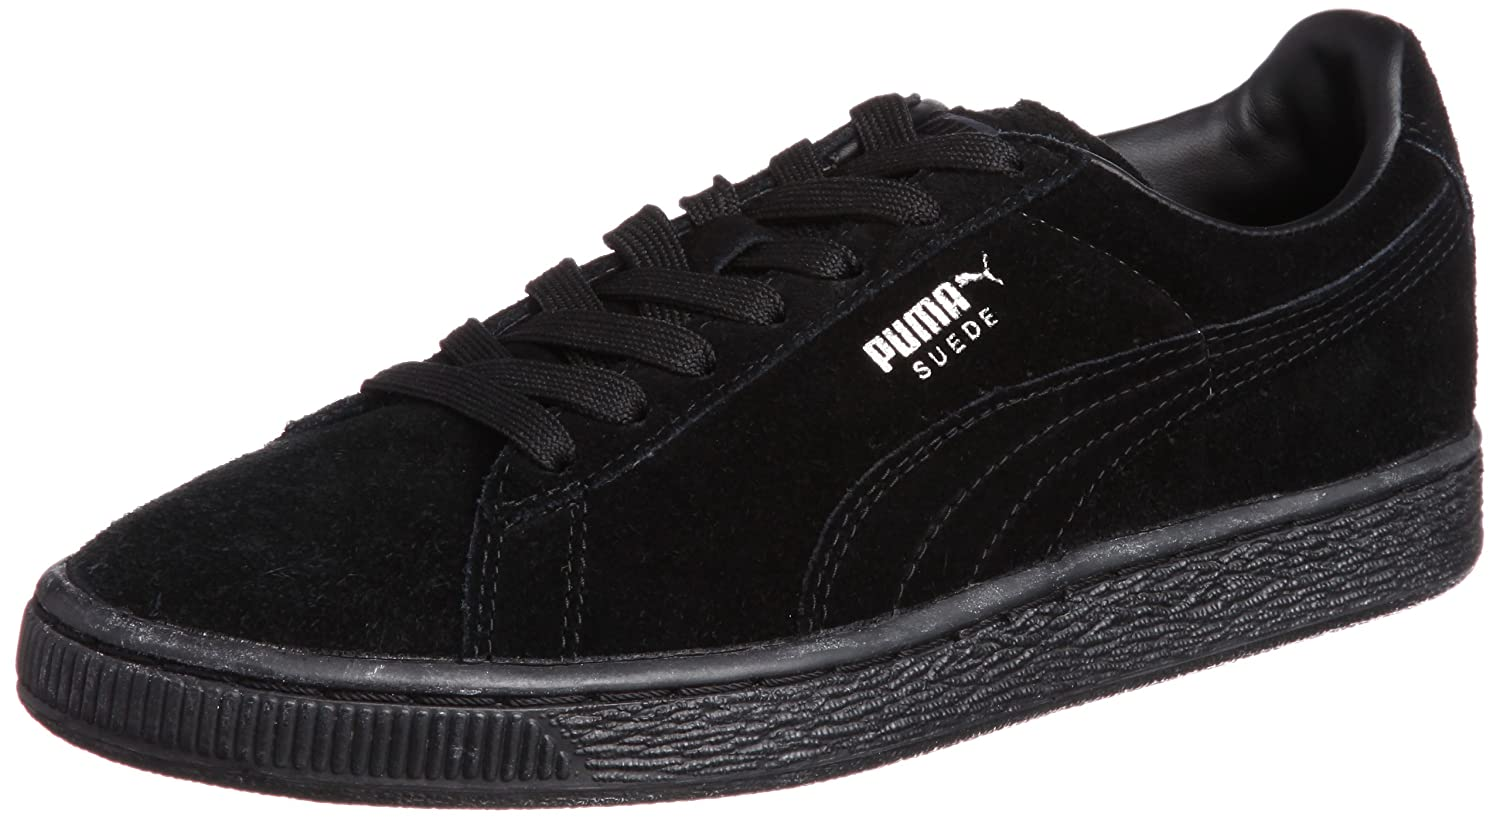 Puma Suede Classic+, Zapatillas Unisex Adulto 43 EU|Negro (Black/Dark Shadow)